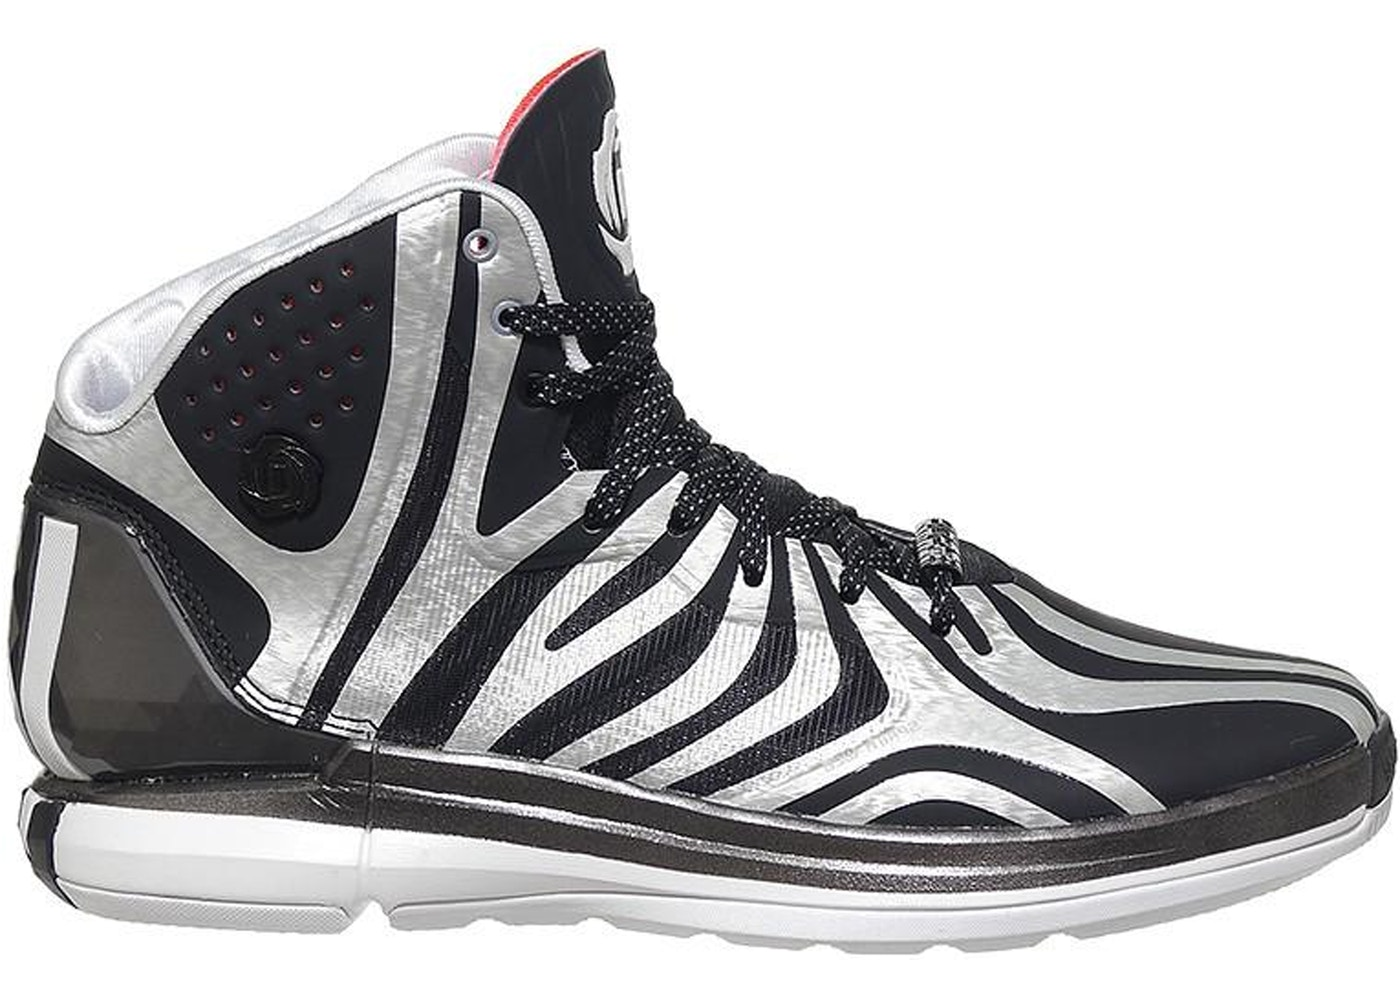 7e2a138279e Sell. or Ask. Size  9.5. View All Bids. adidas D Rose 4.5 Zebra